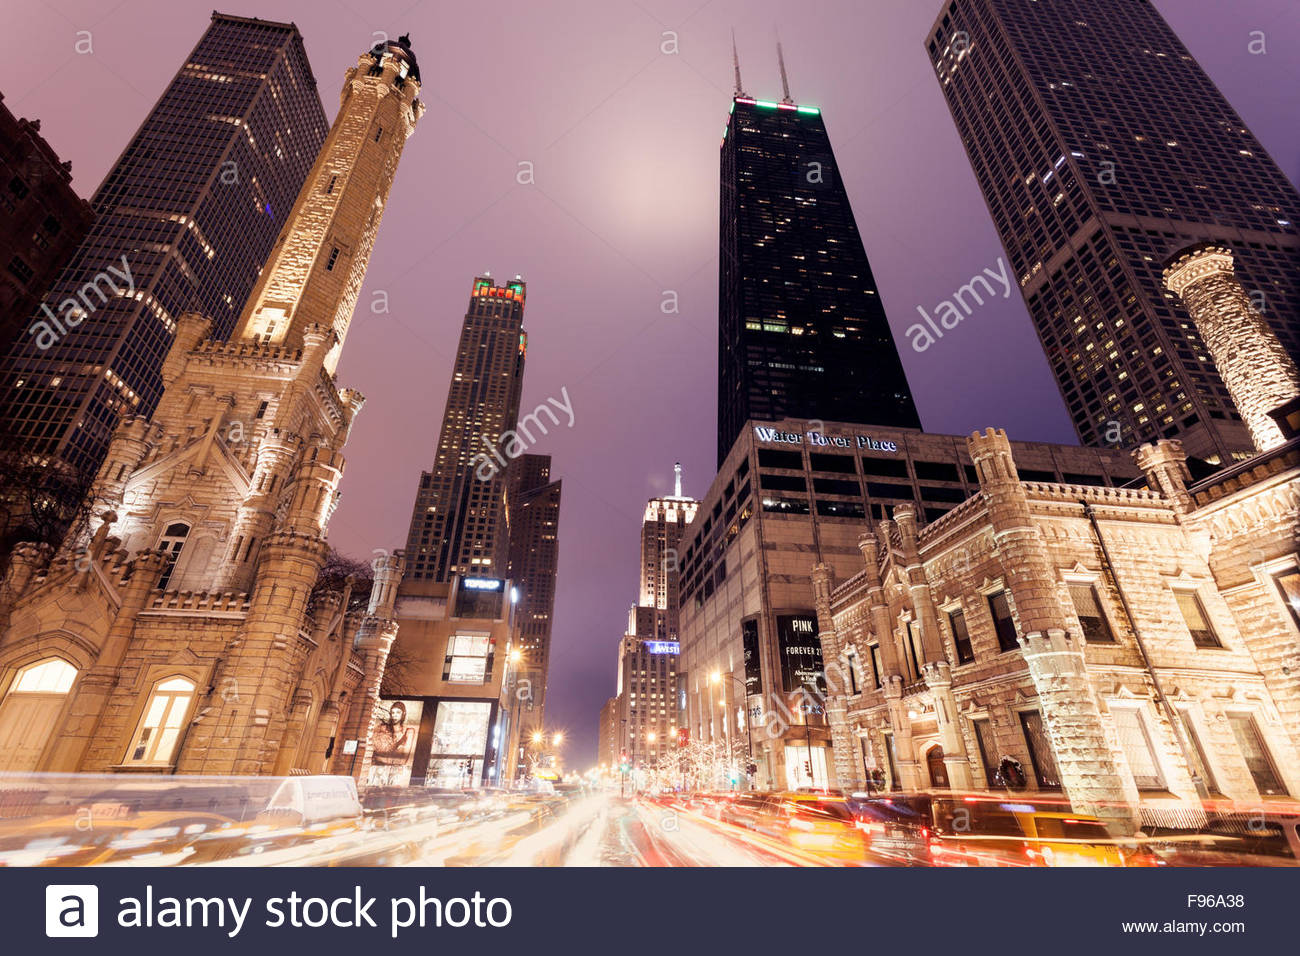 water tower in chicago christmas time chicago illinois usa stock image - Chicago Christmas